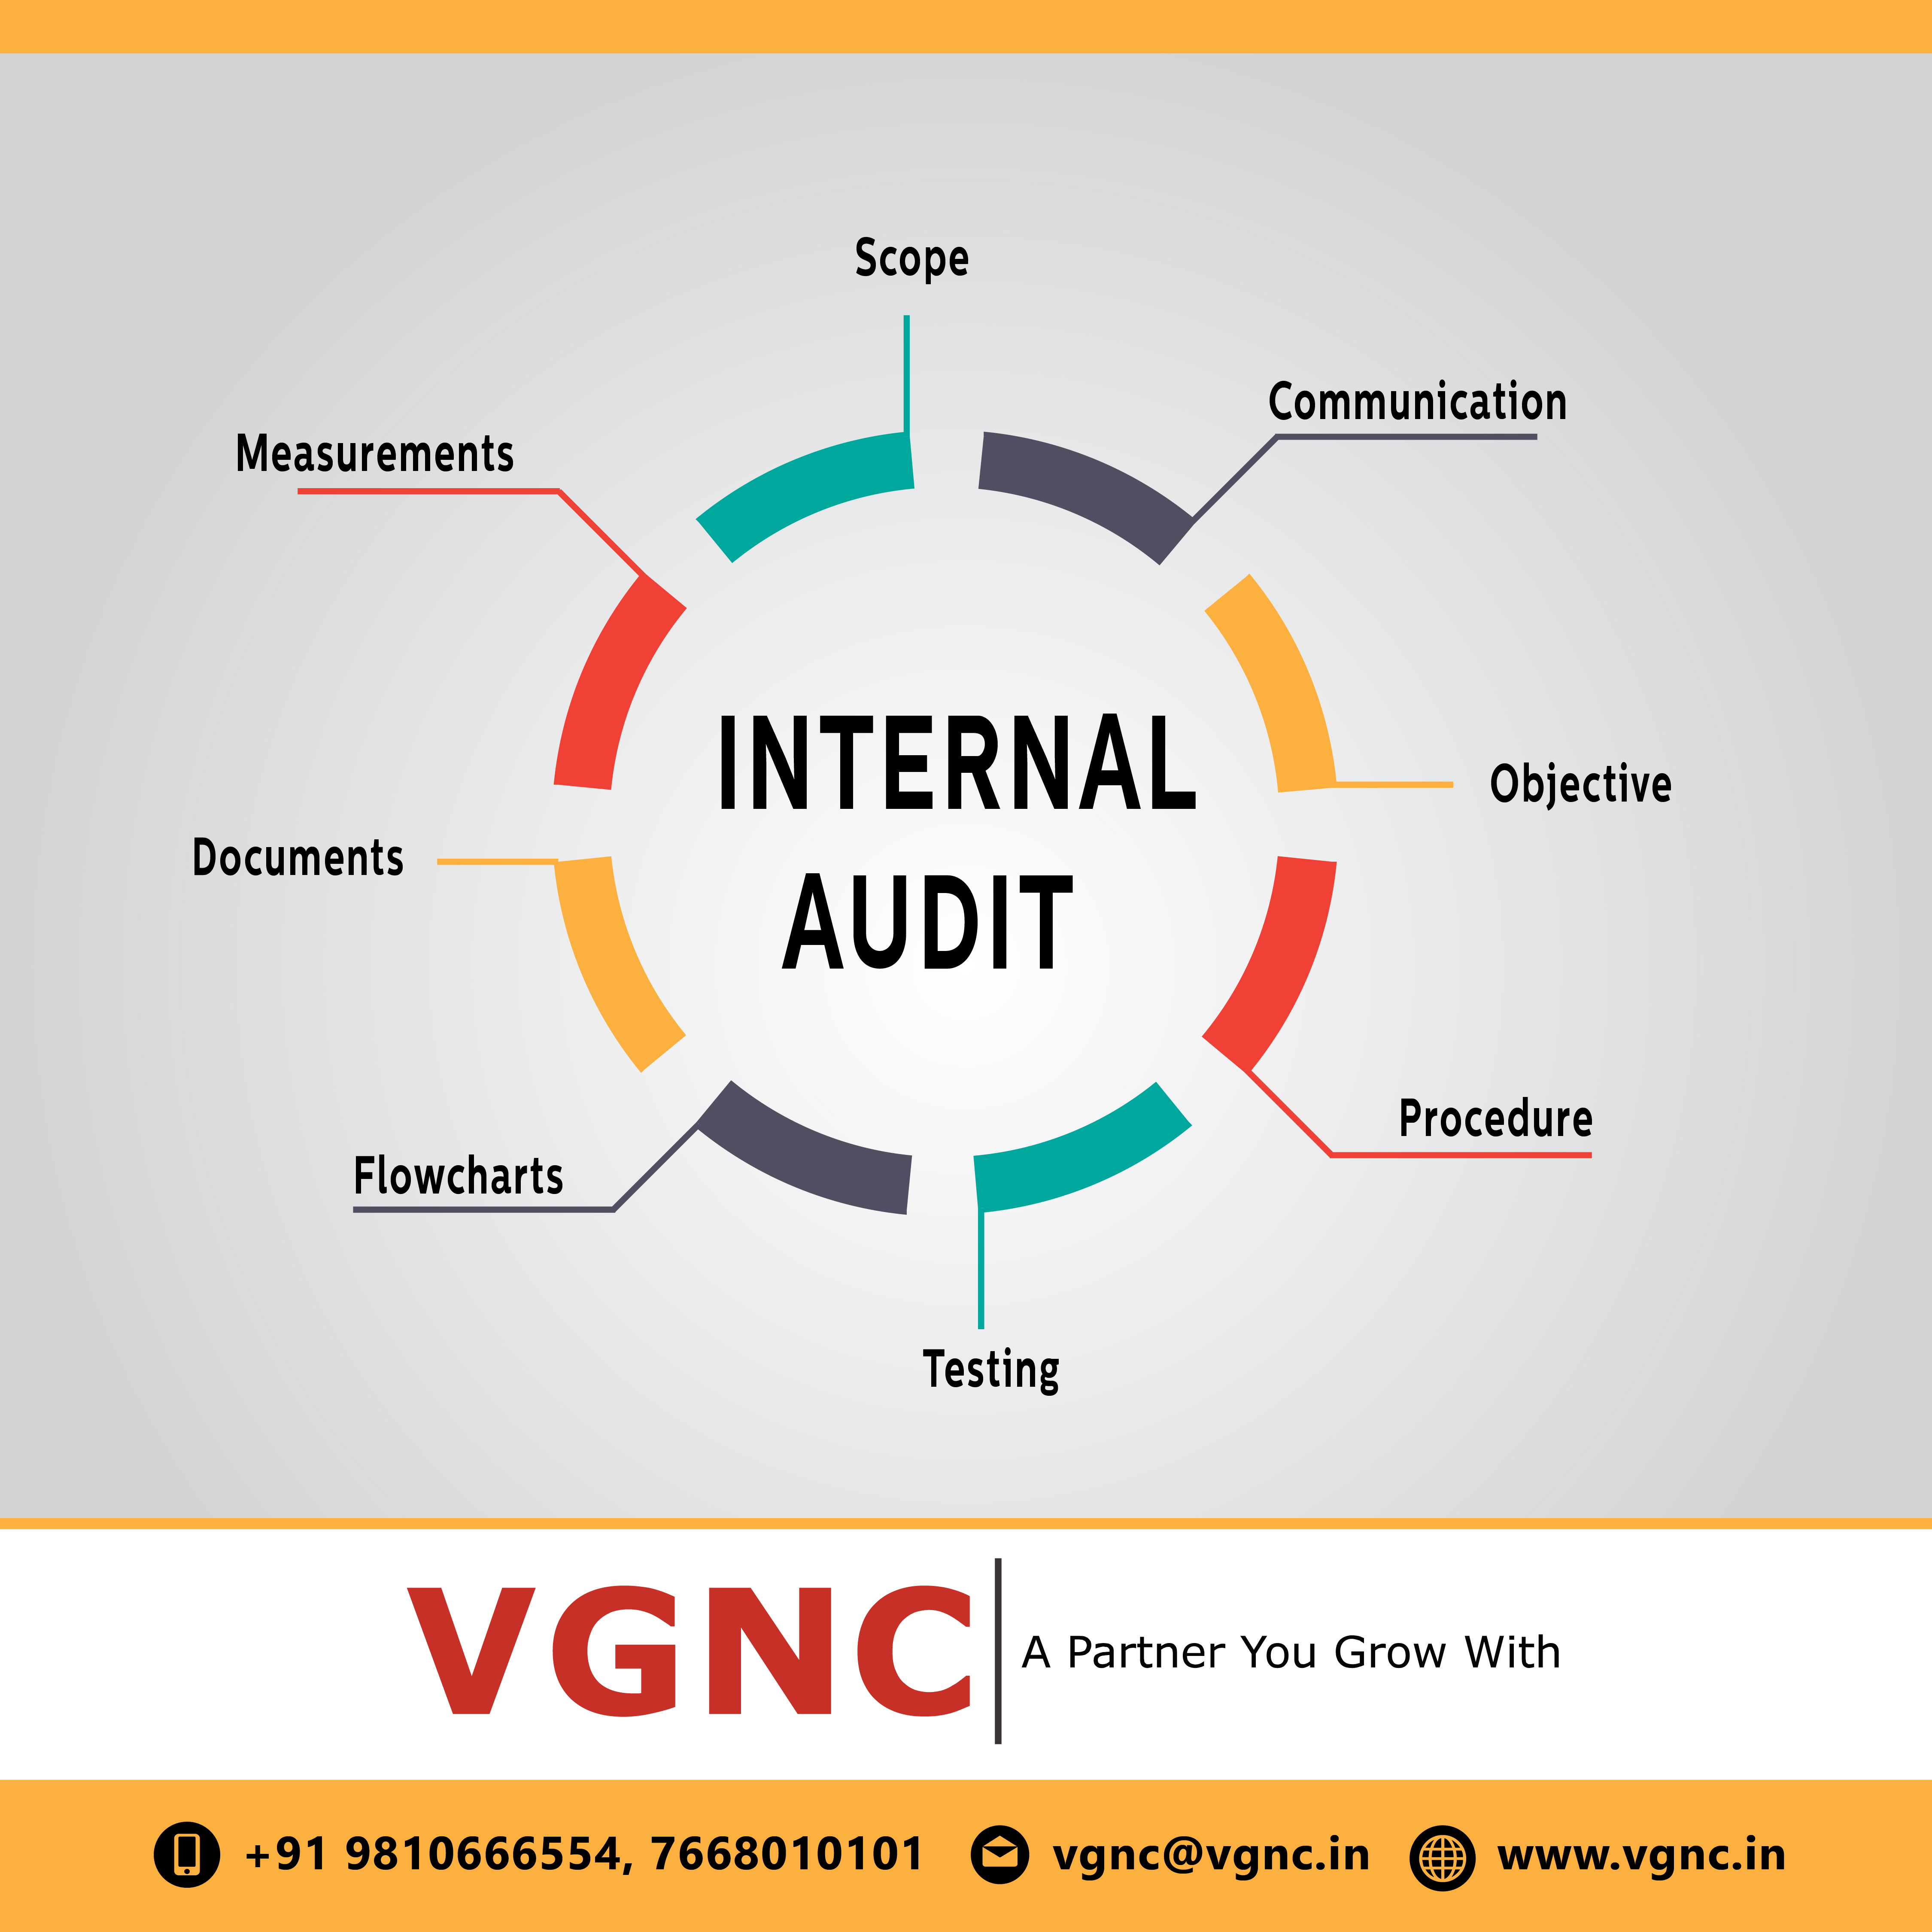 Ways to Strengthen Internal Audit to Meet Stakeholder's Needs